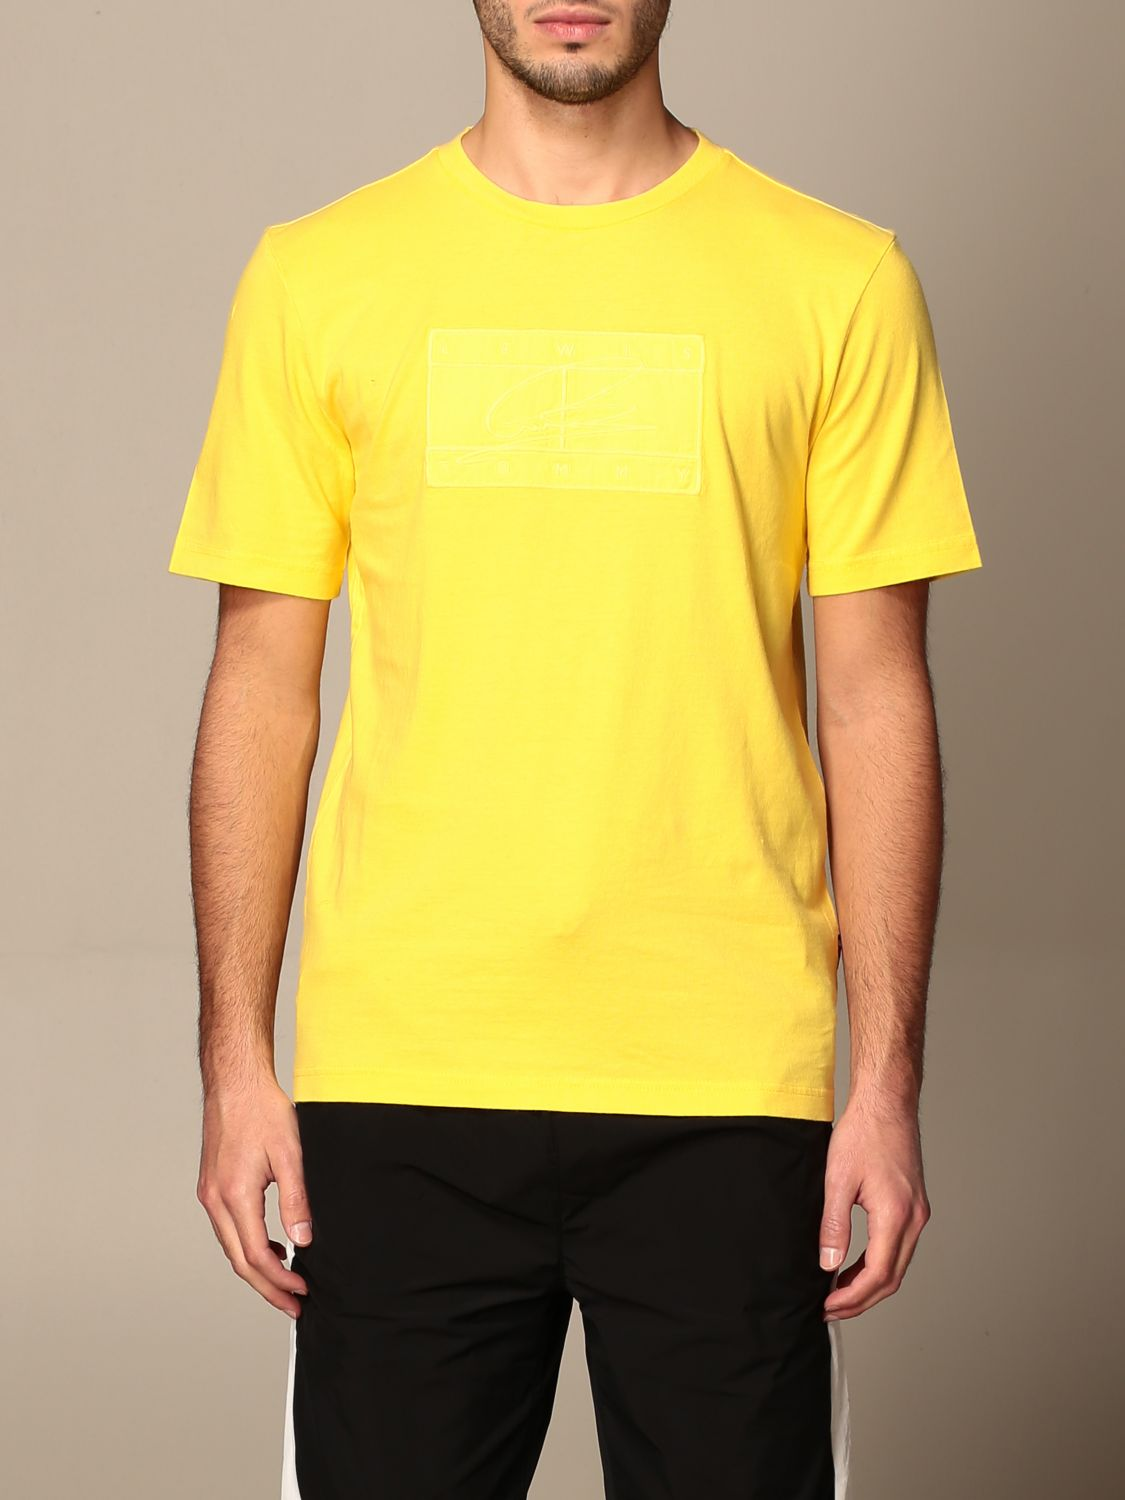 T-shirt Hilfiger Collection: Lewis Hamilton relaxed fit cotton T-shirt yellow 1